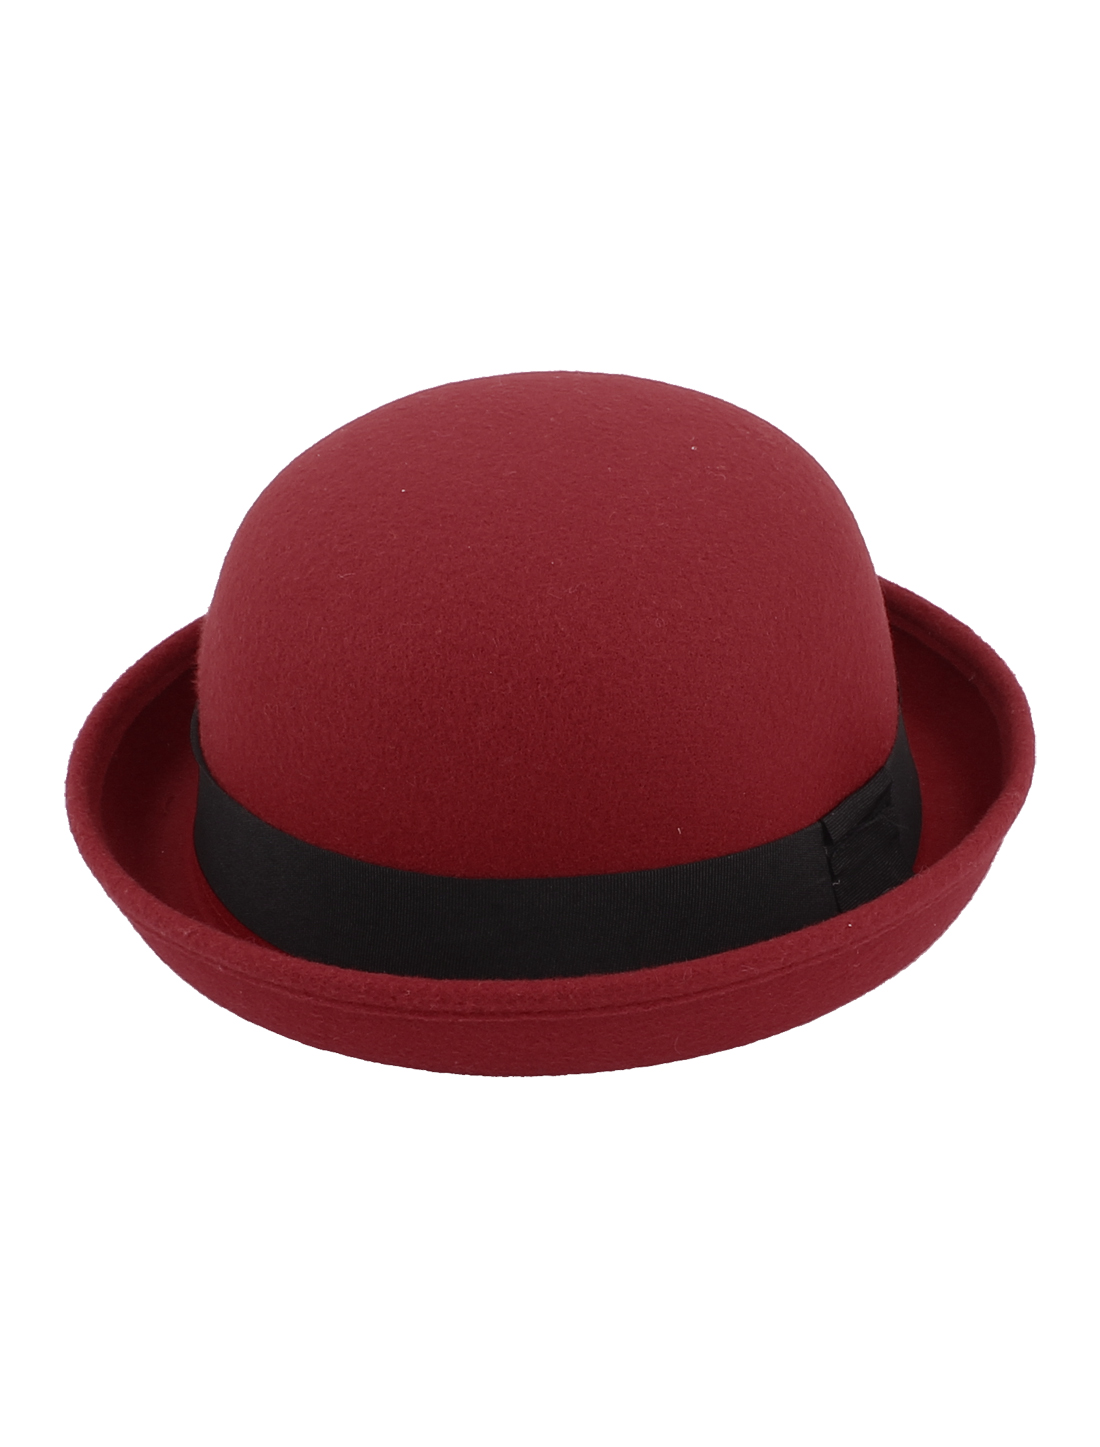 Girl Travel Black Band Rolled Cotton Blends Roll up Brim Worsted Bowler Hat Cap Red